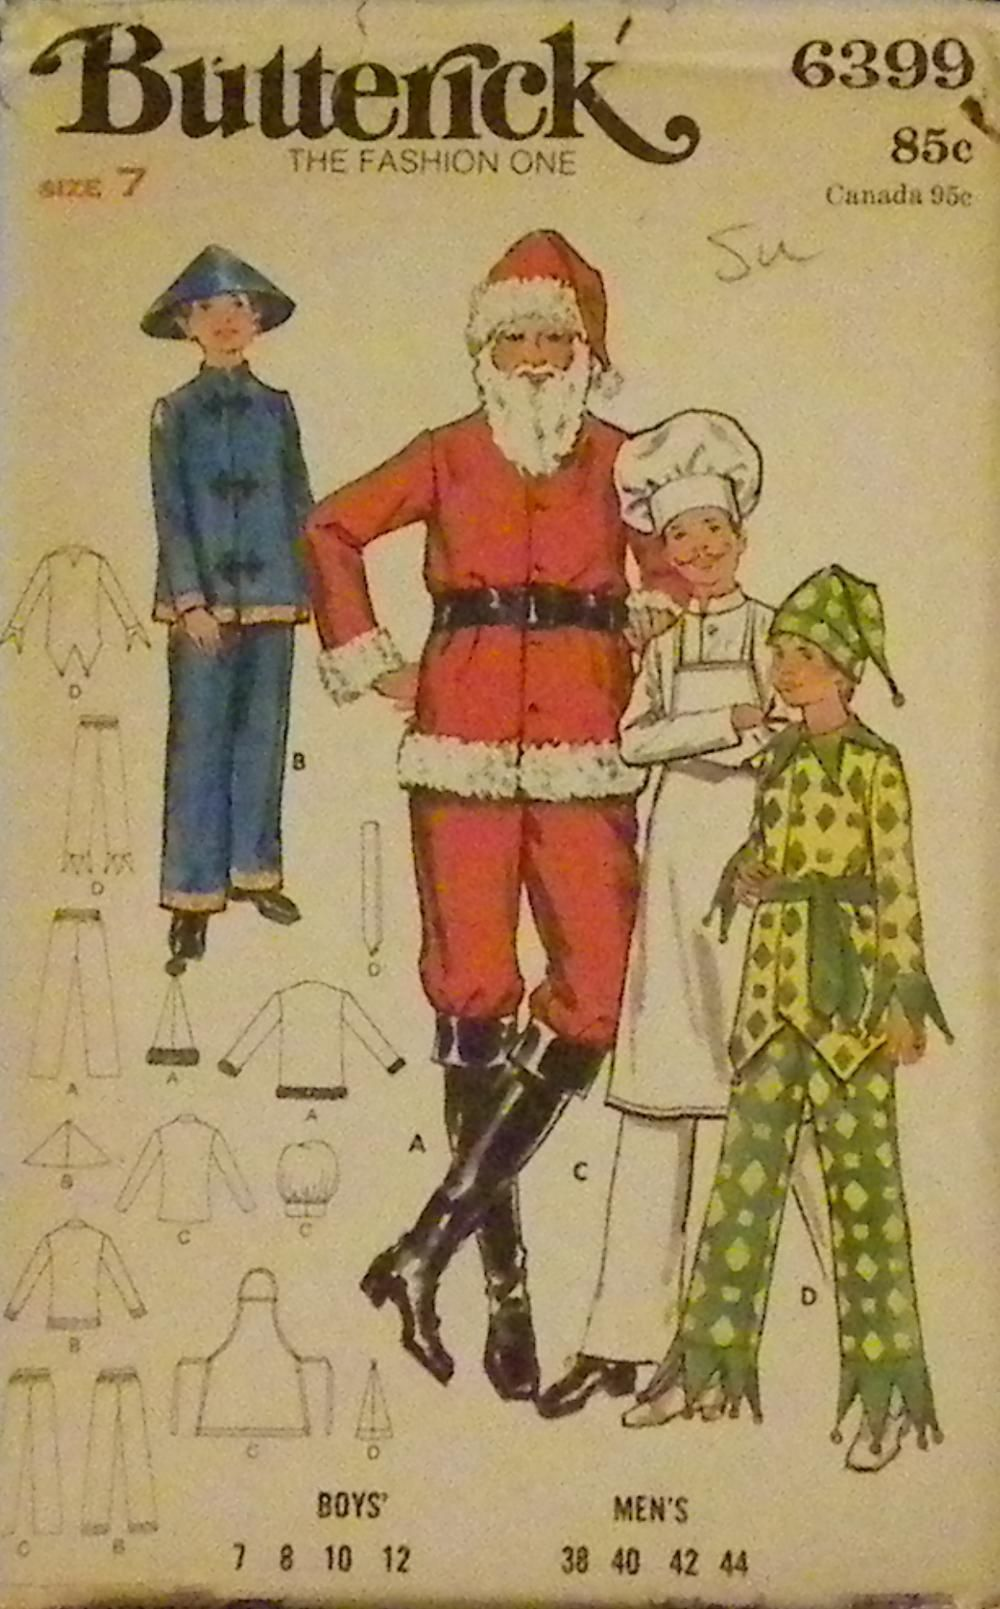 Butterick 6399 chinese man costumes and vintage sewing patterns butterick 6399 christmas sewing patternsboys jeuxipadfo Image collections